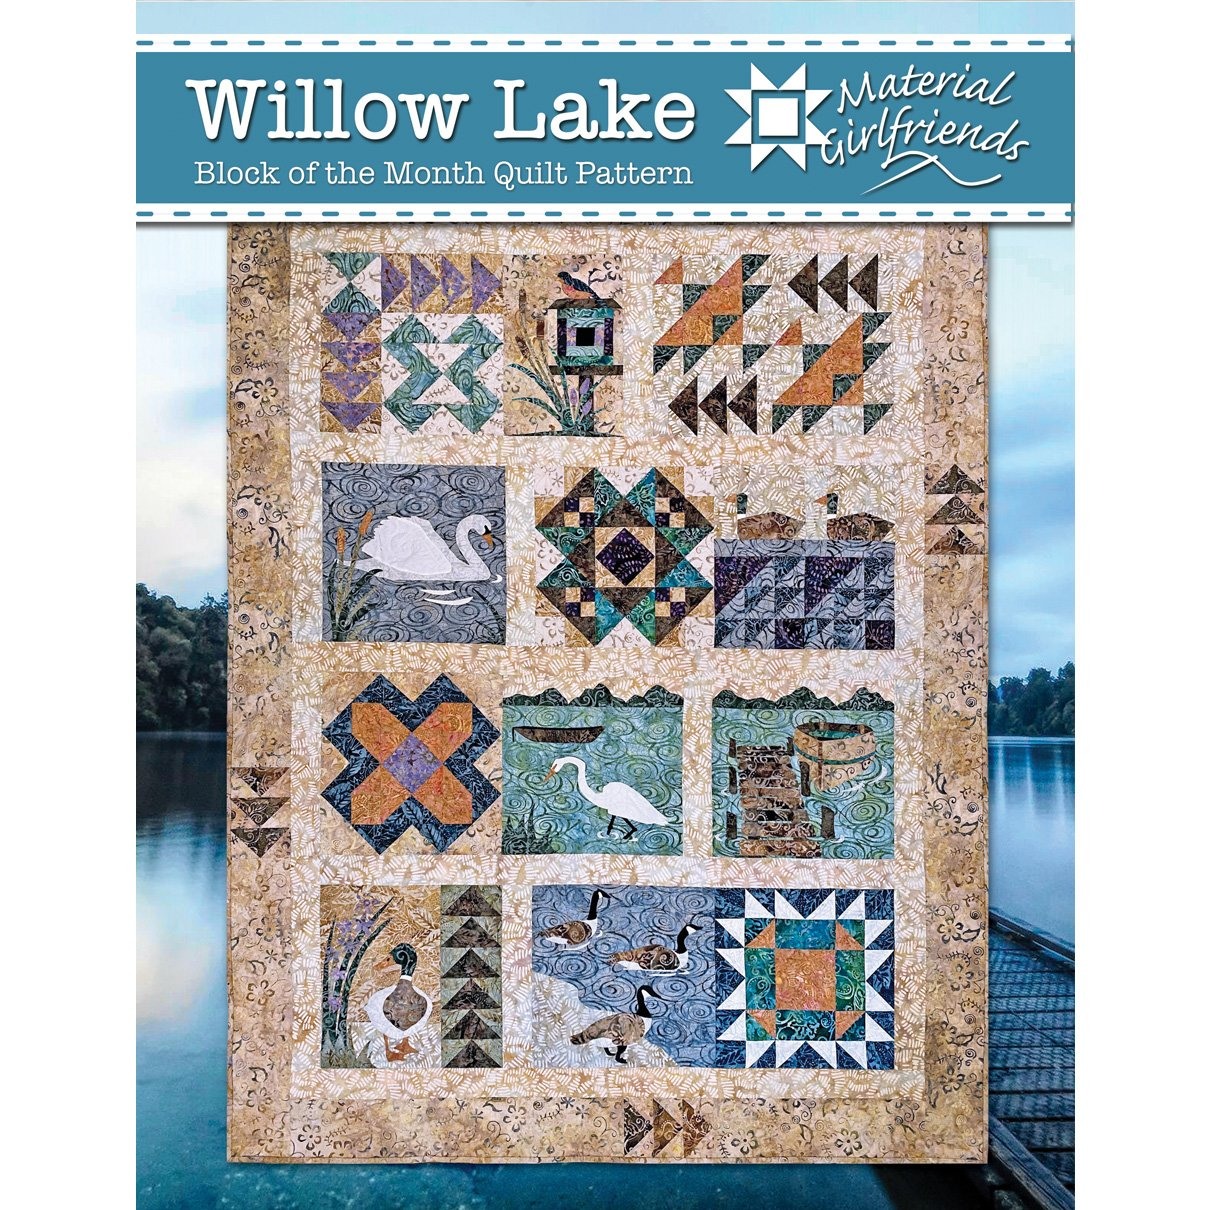 Willow Lake by Material Girlfriends